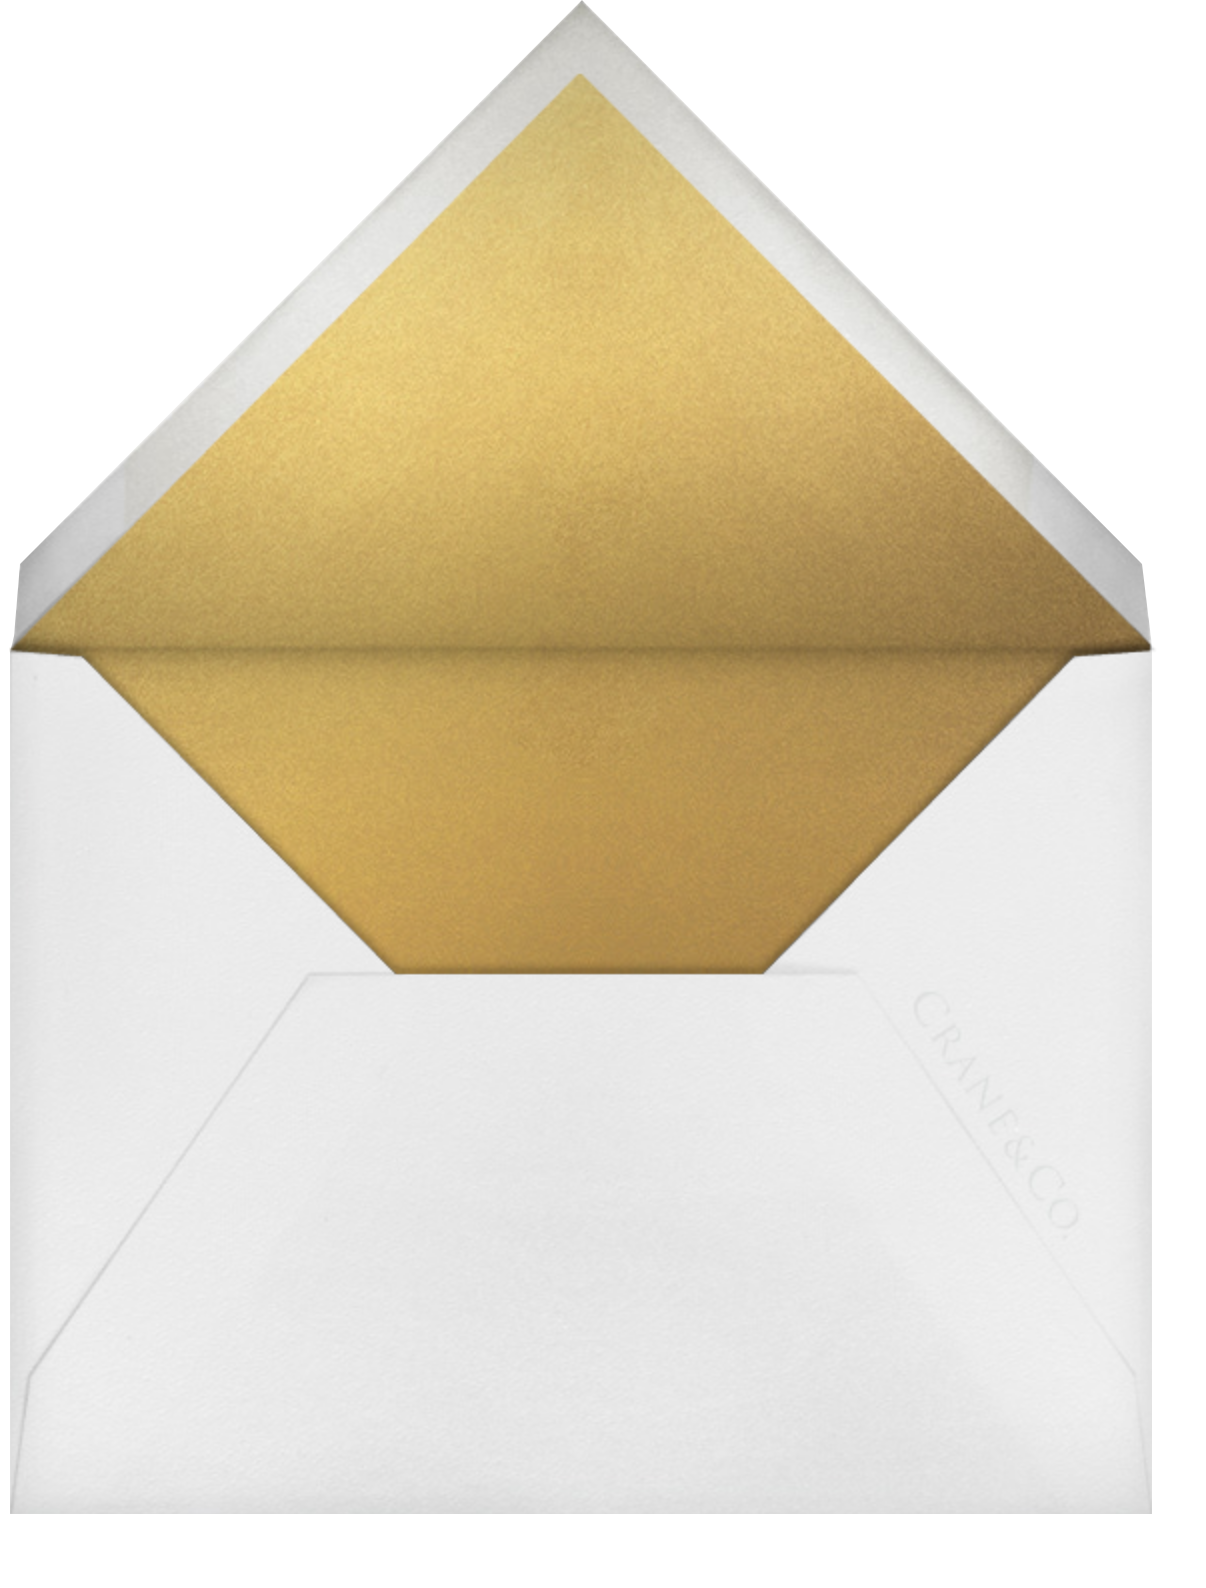 Somme I - Gold - Paperless Post - Engagement party - envelope back